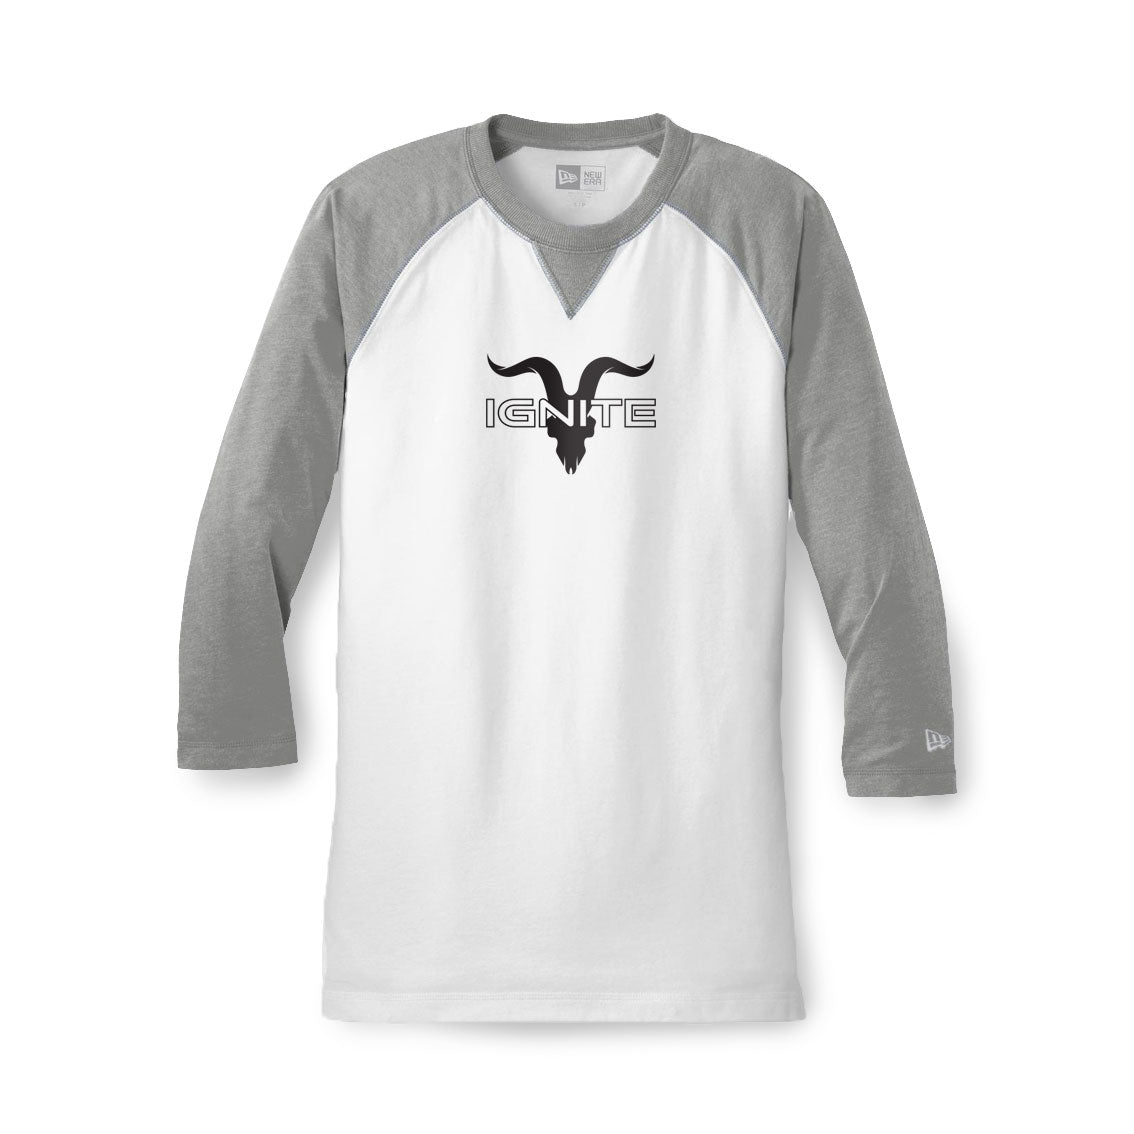 Ignite Premium Collection Raglan Baseball Tees - Grey Sleeves